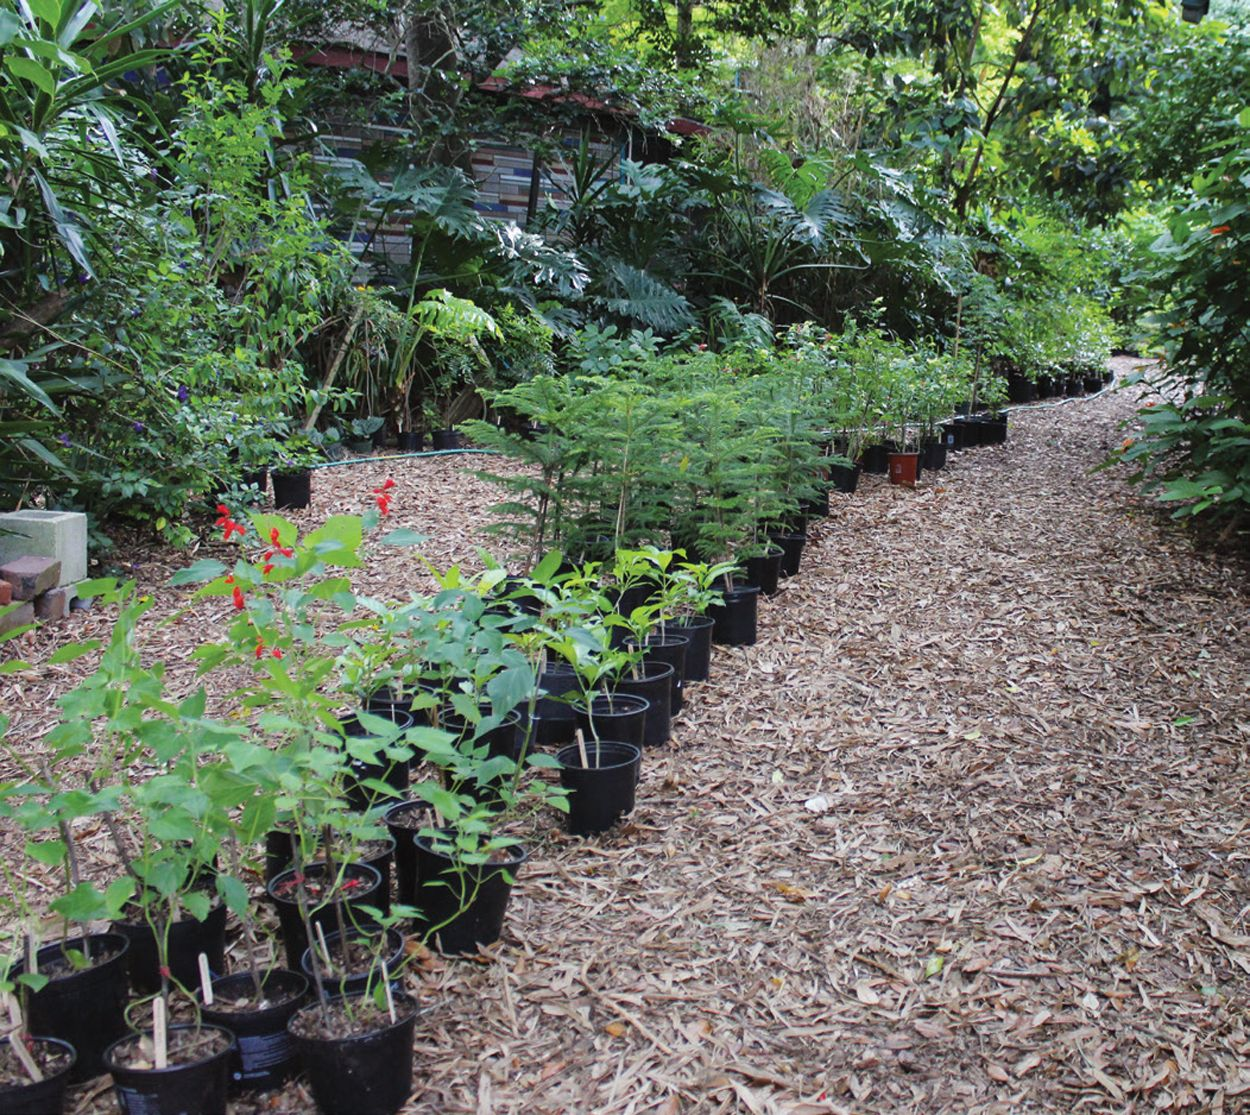 Starting A Nursery Business From Home Whether Small Or Large Means Knowing The Best Ways To Propagate And Plants